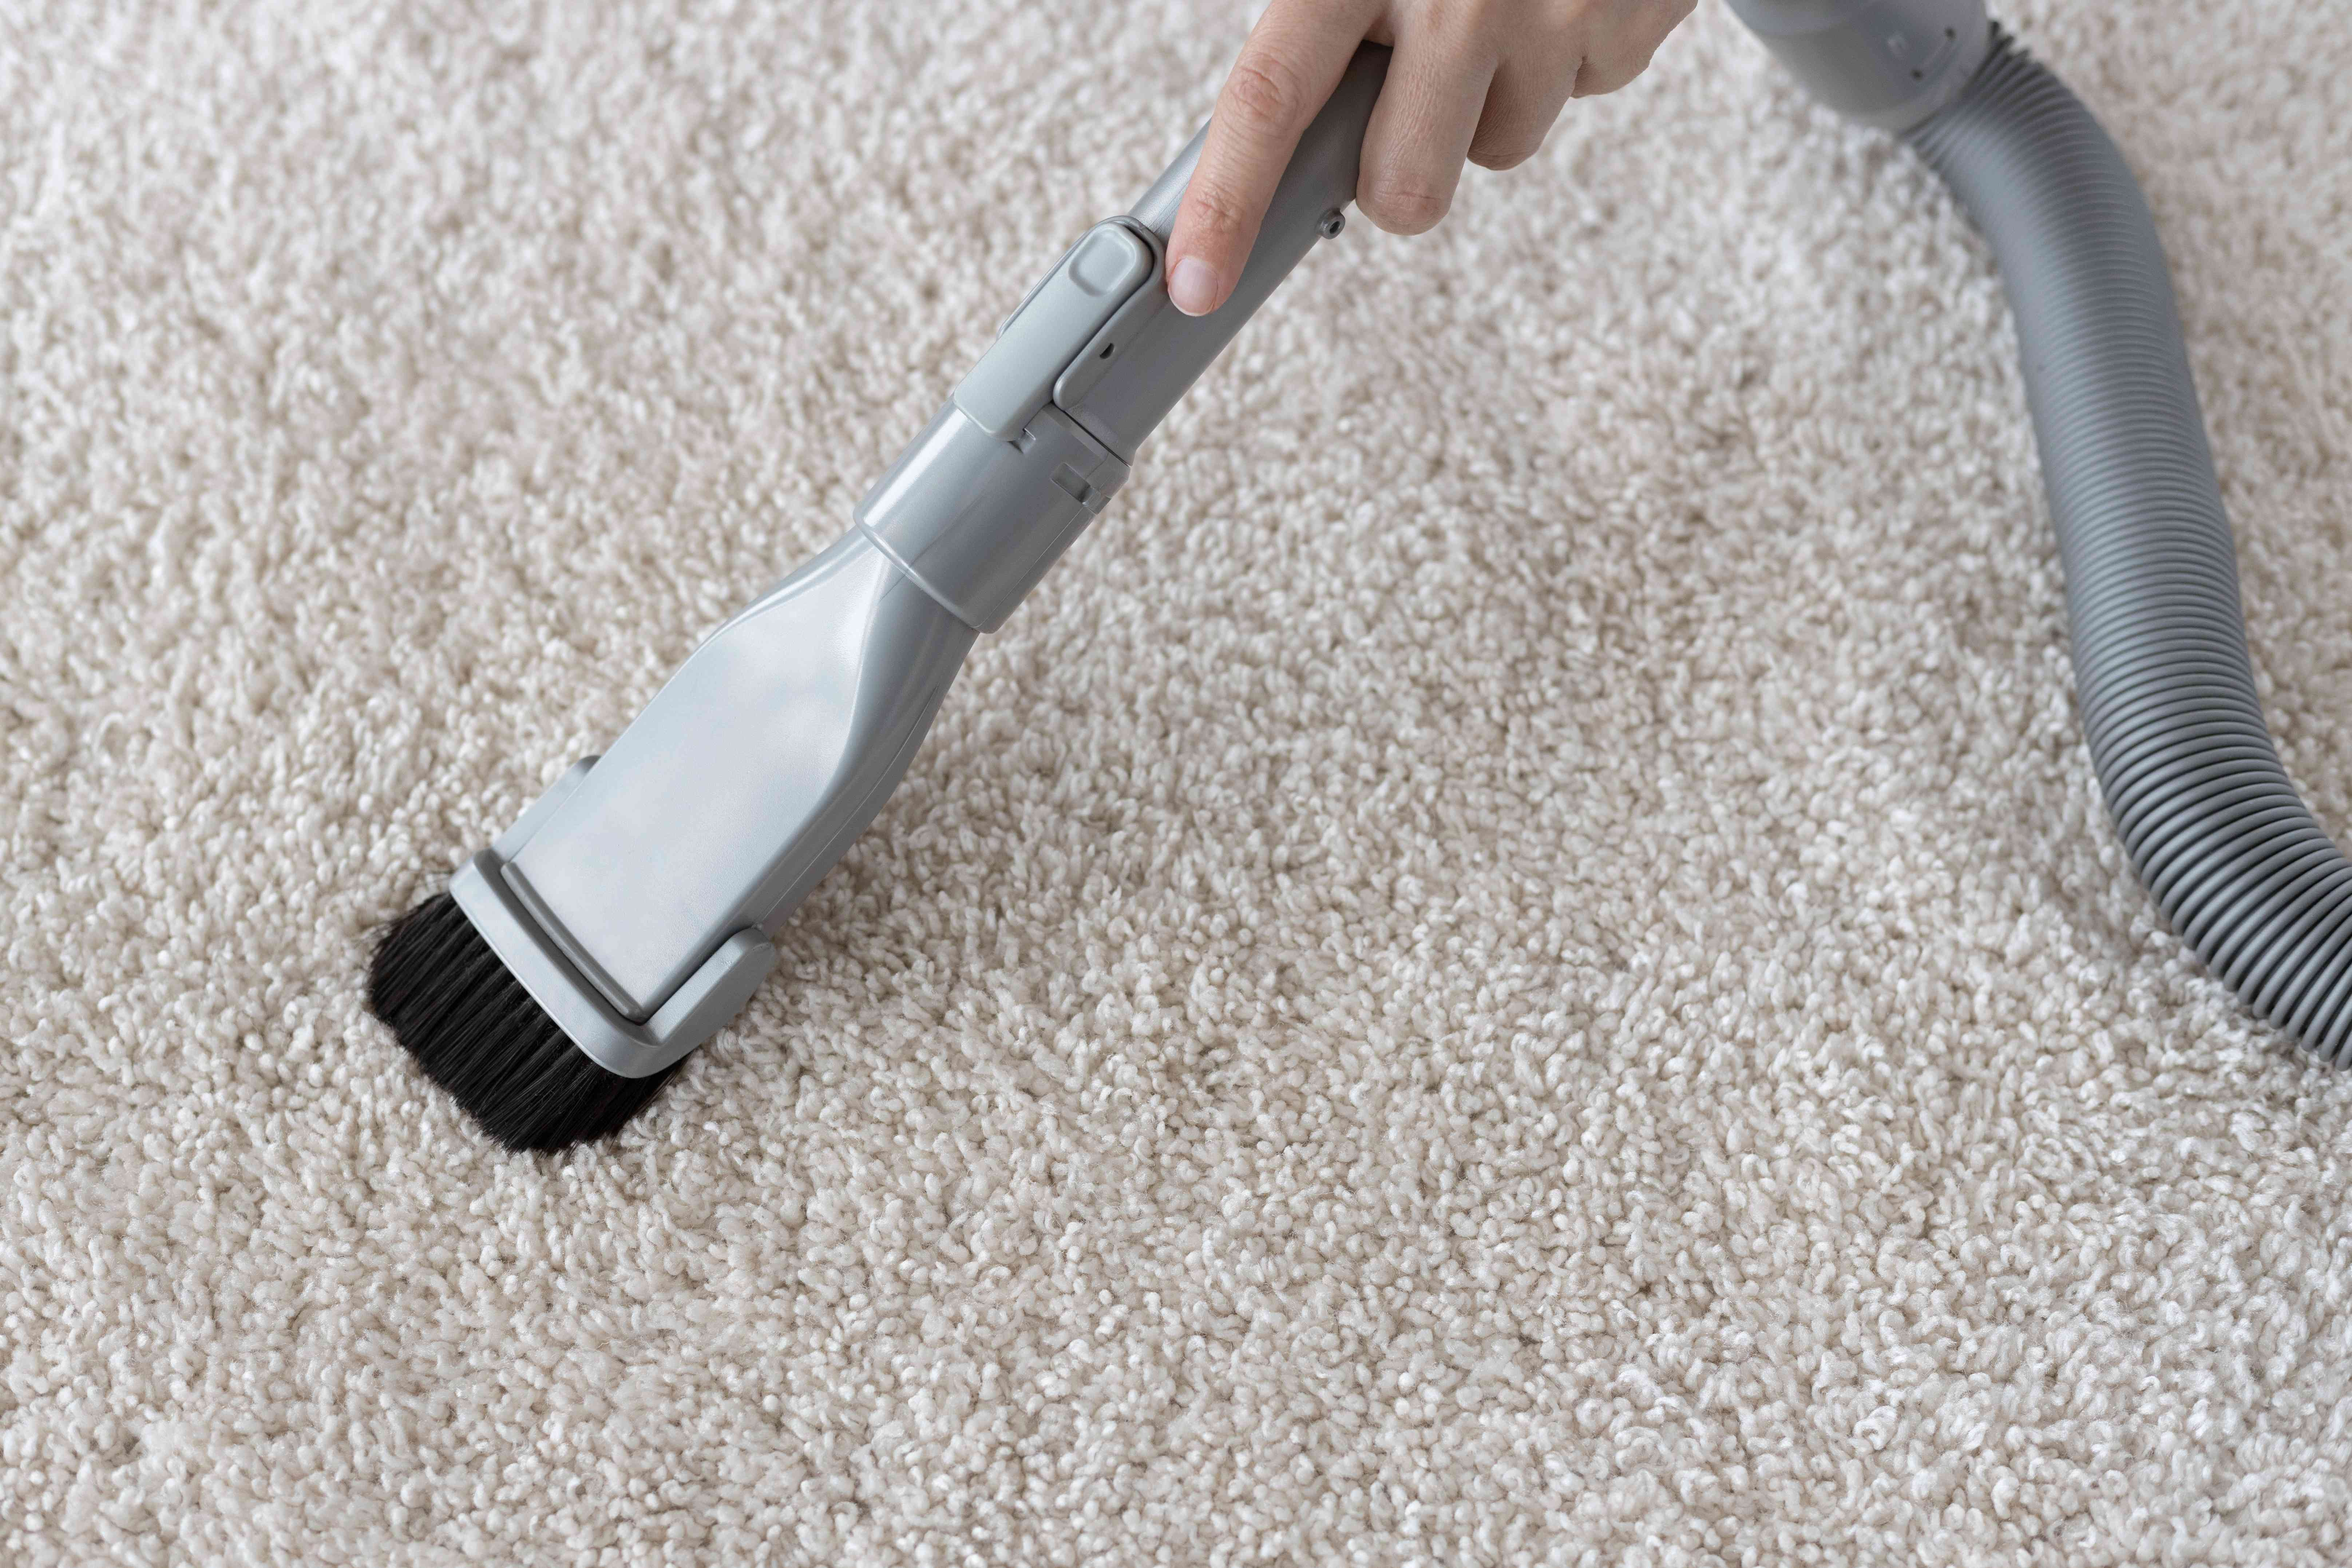 Cream-colored carpet vacuumed after air drying